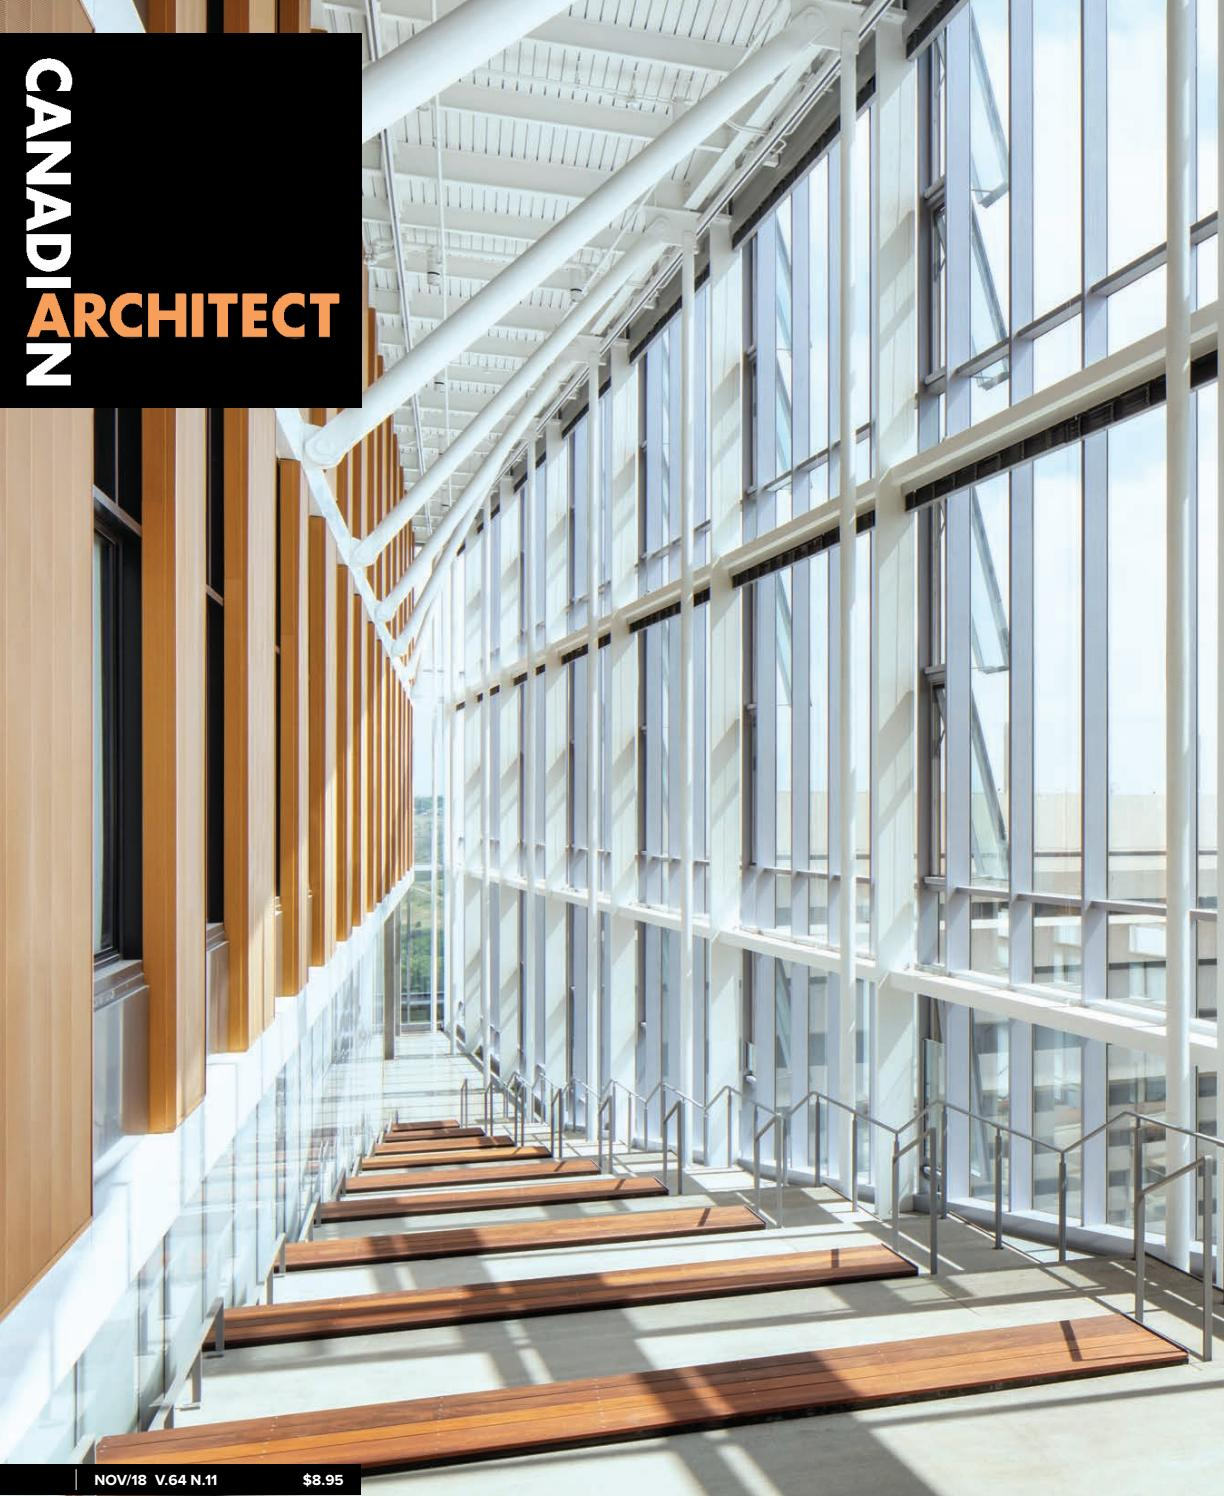 Fabriquer Une Balustrade En Bois canadian architect november 2019iq business media - issuu